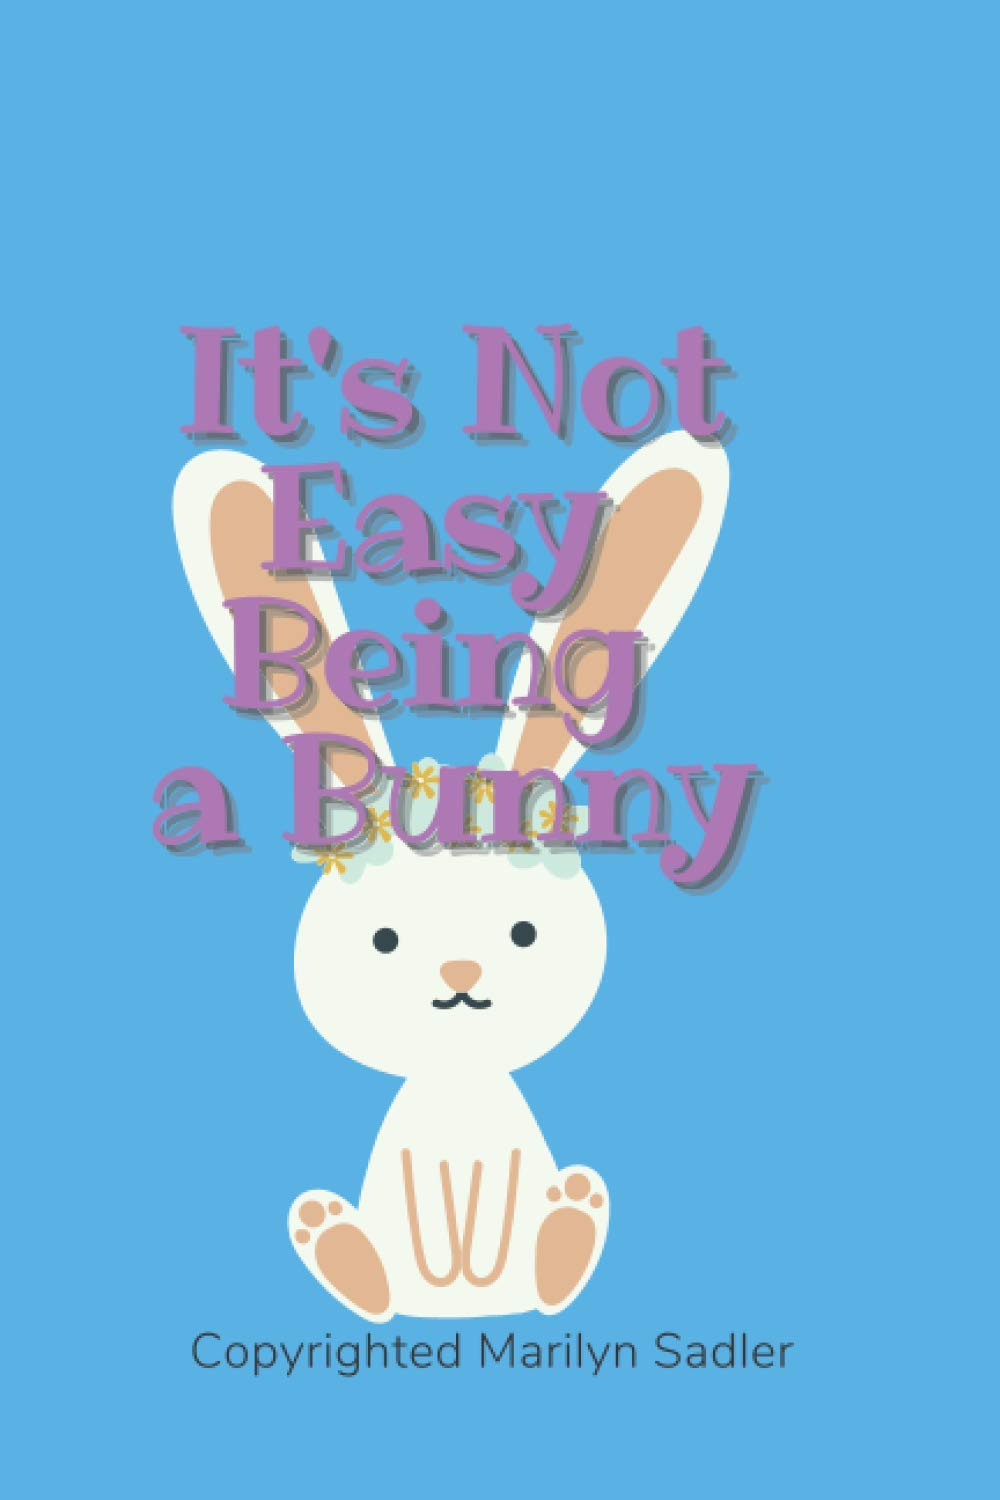 It's no longer simple being a bunny